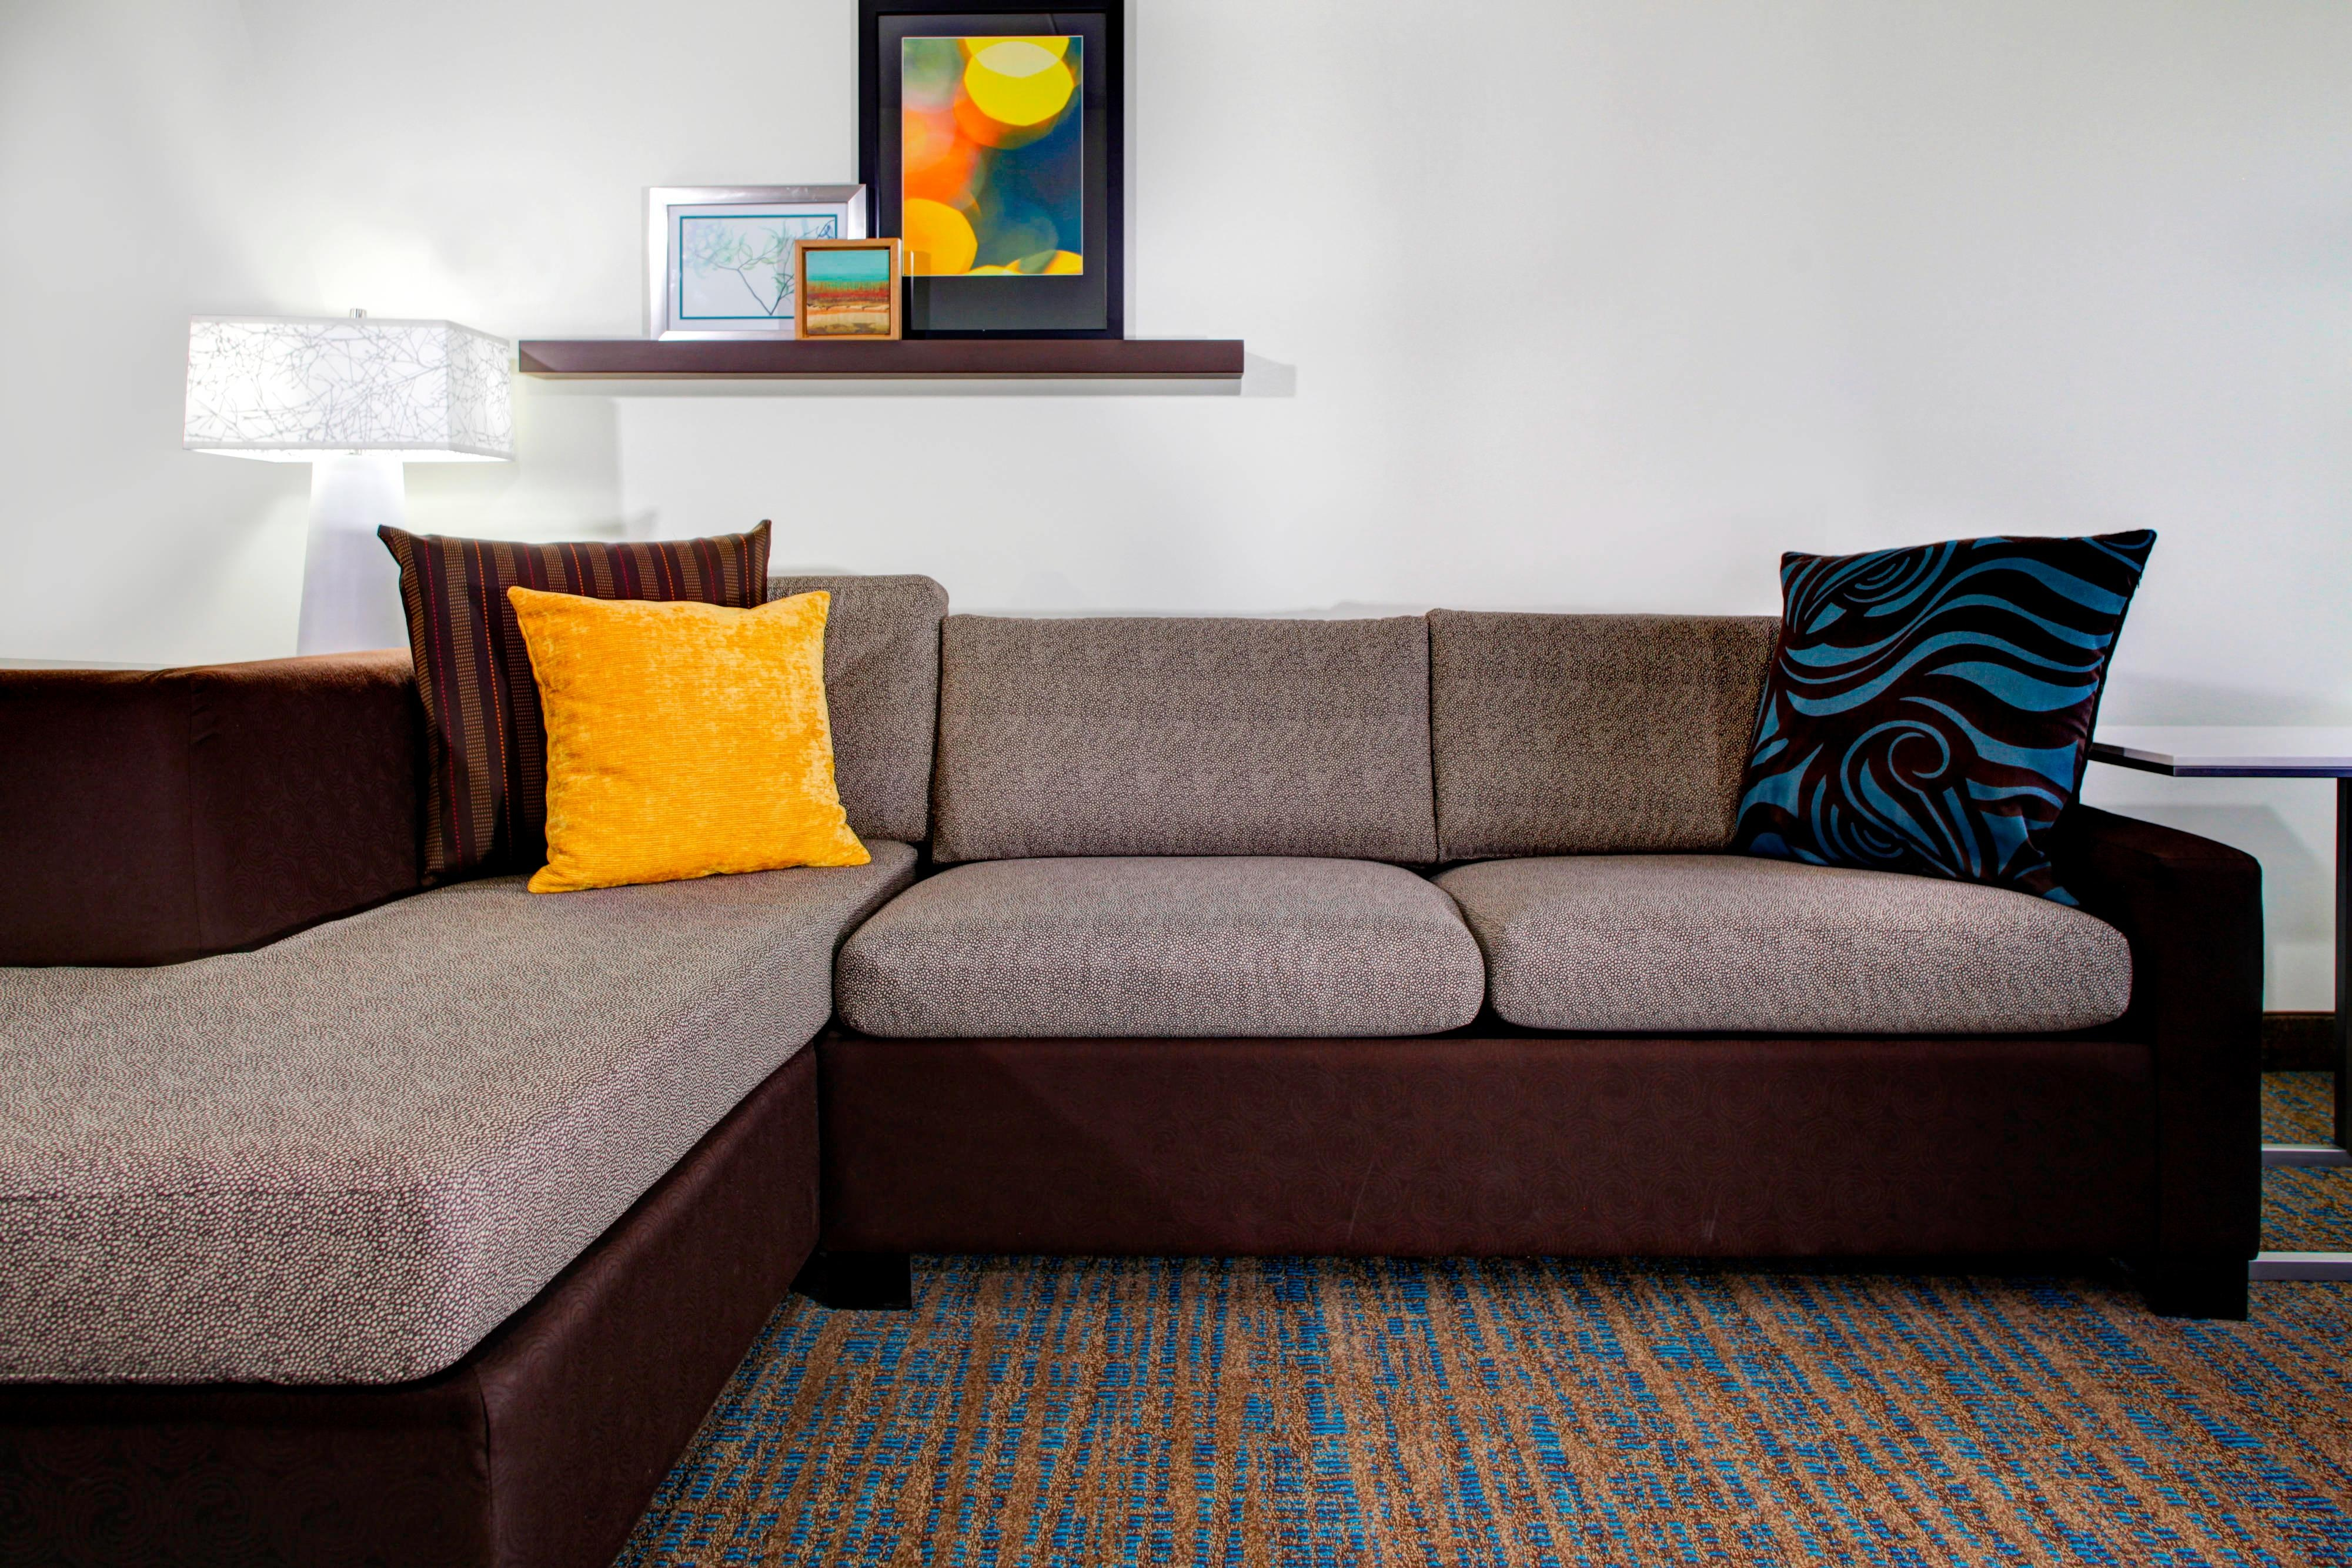 Cleveland Beachwood extended stay